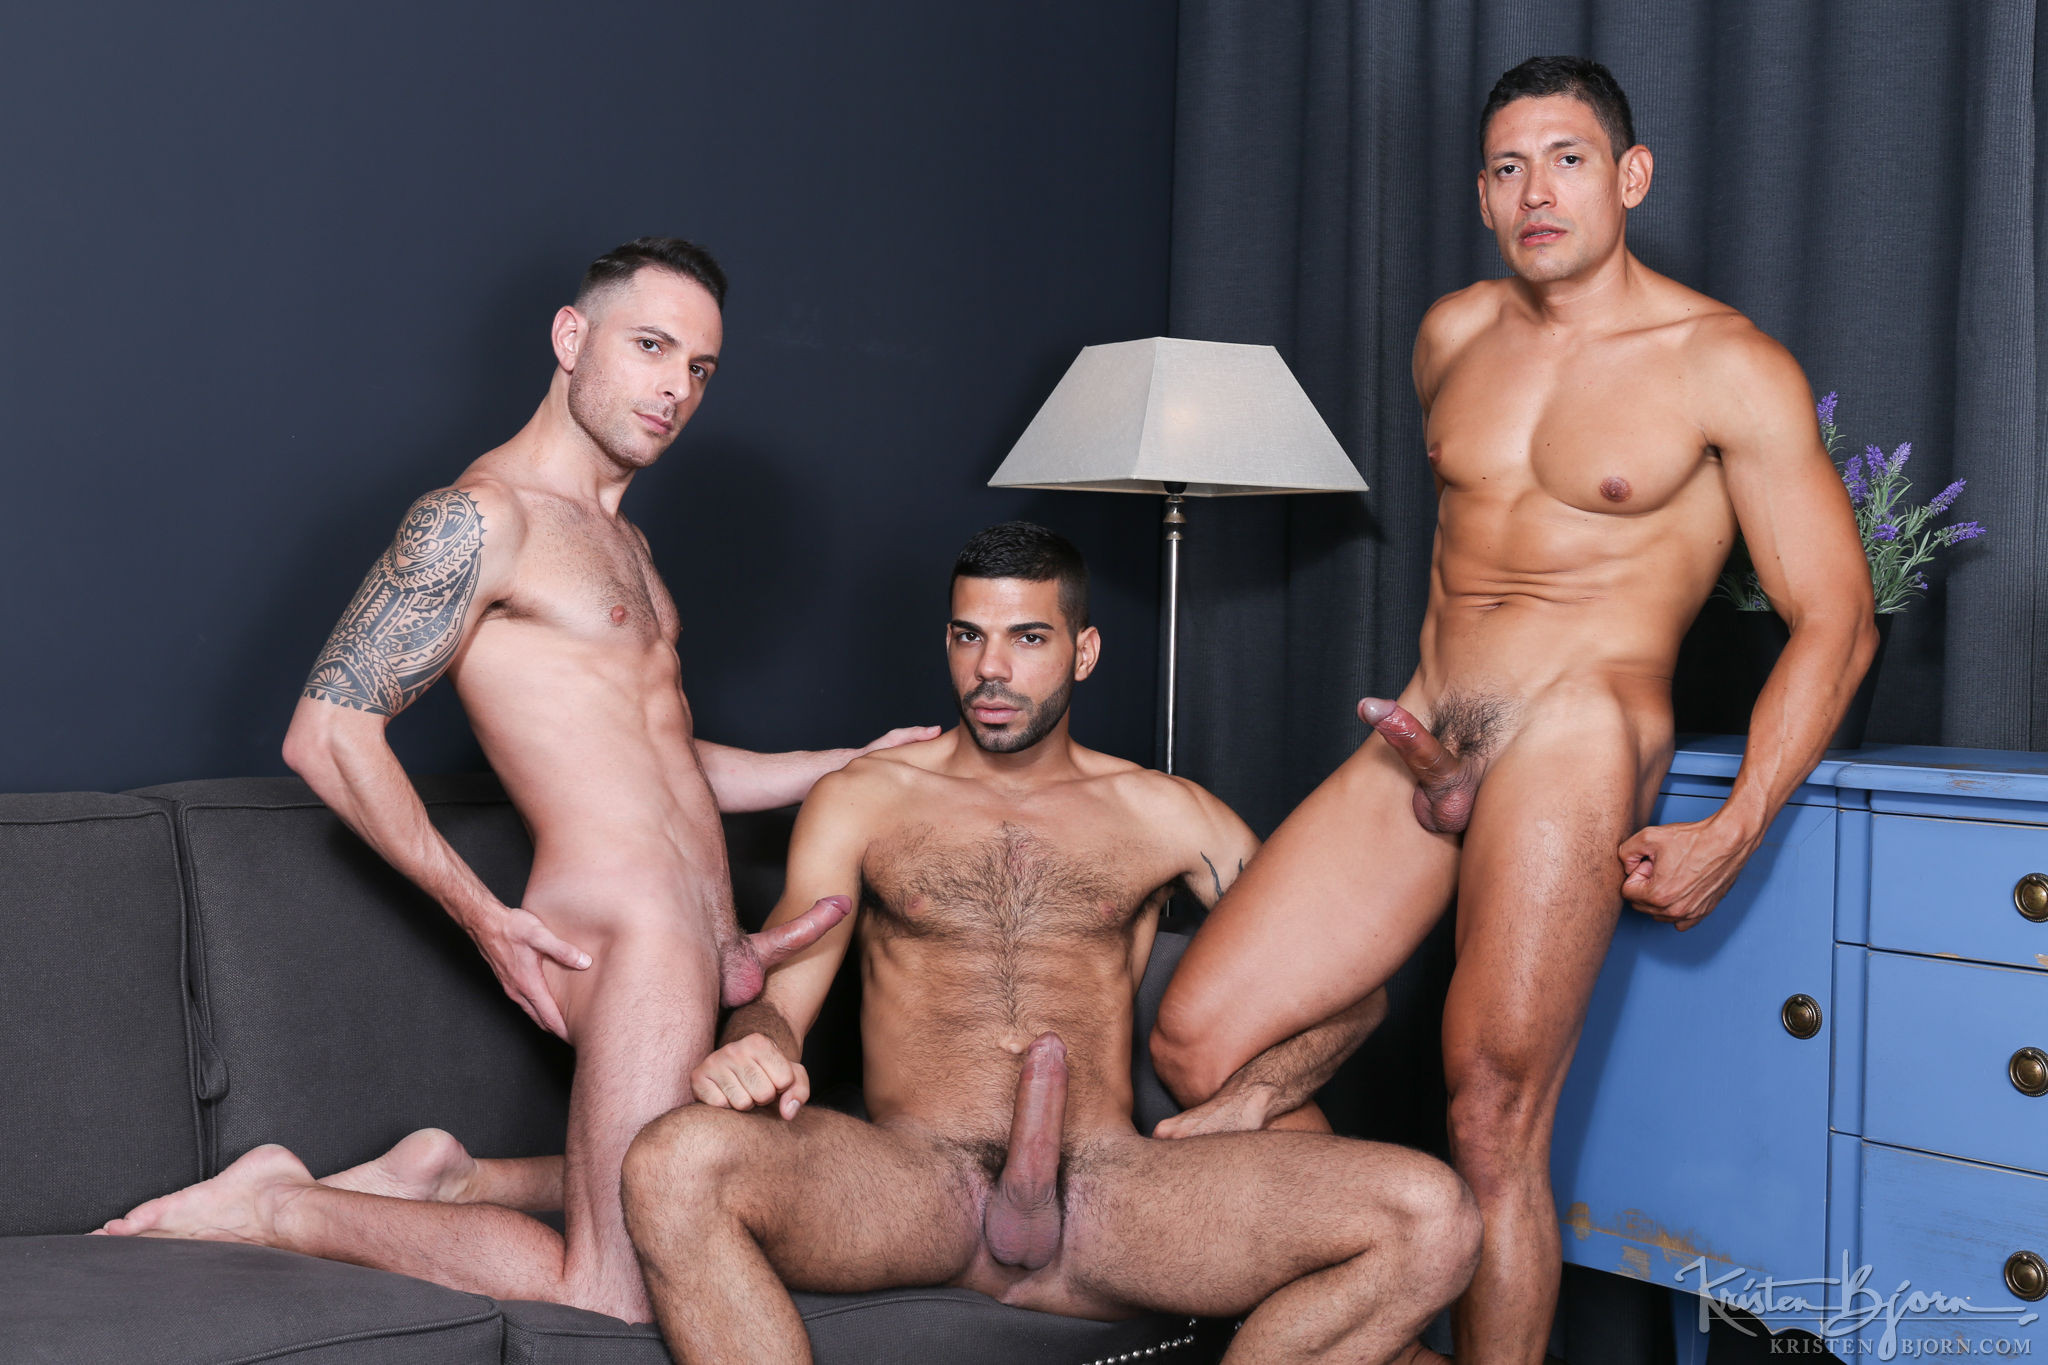 Aitor Actor Porno meat men: giving one's all - hugo arenas, aitor bravo, john rodriguez